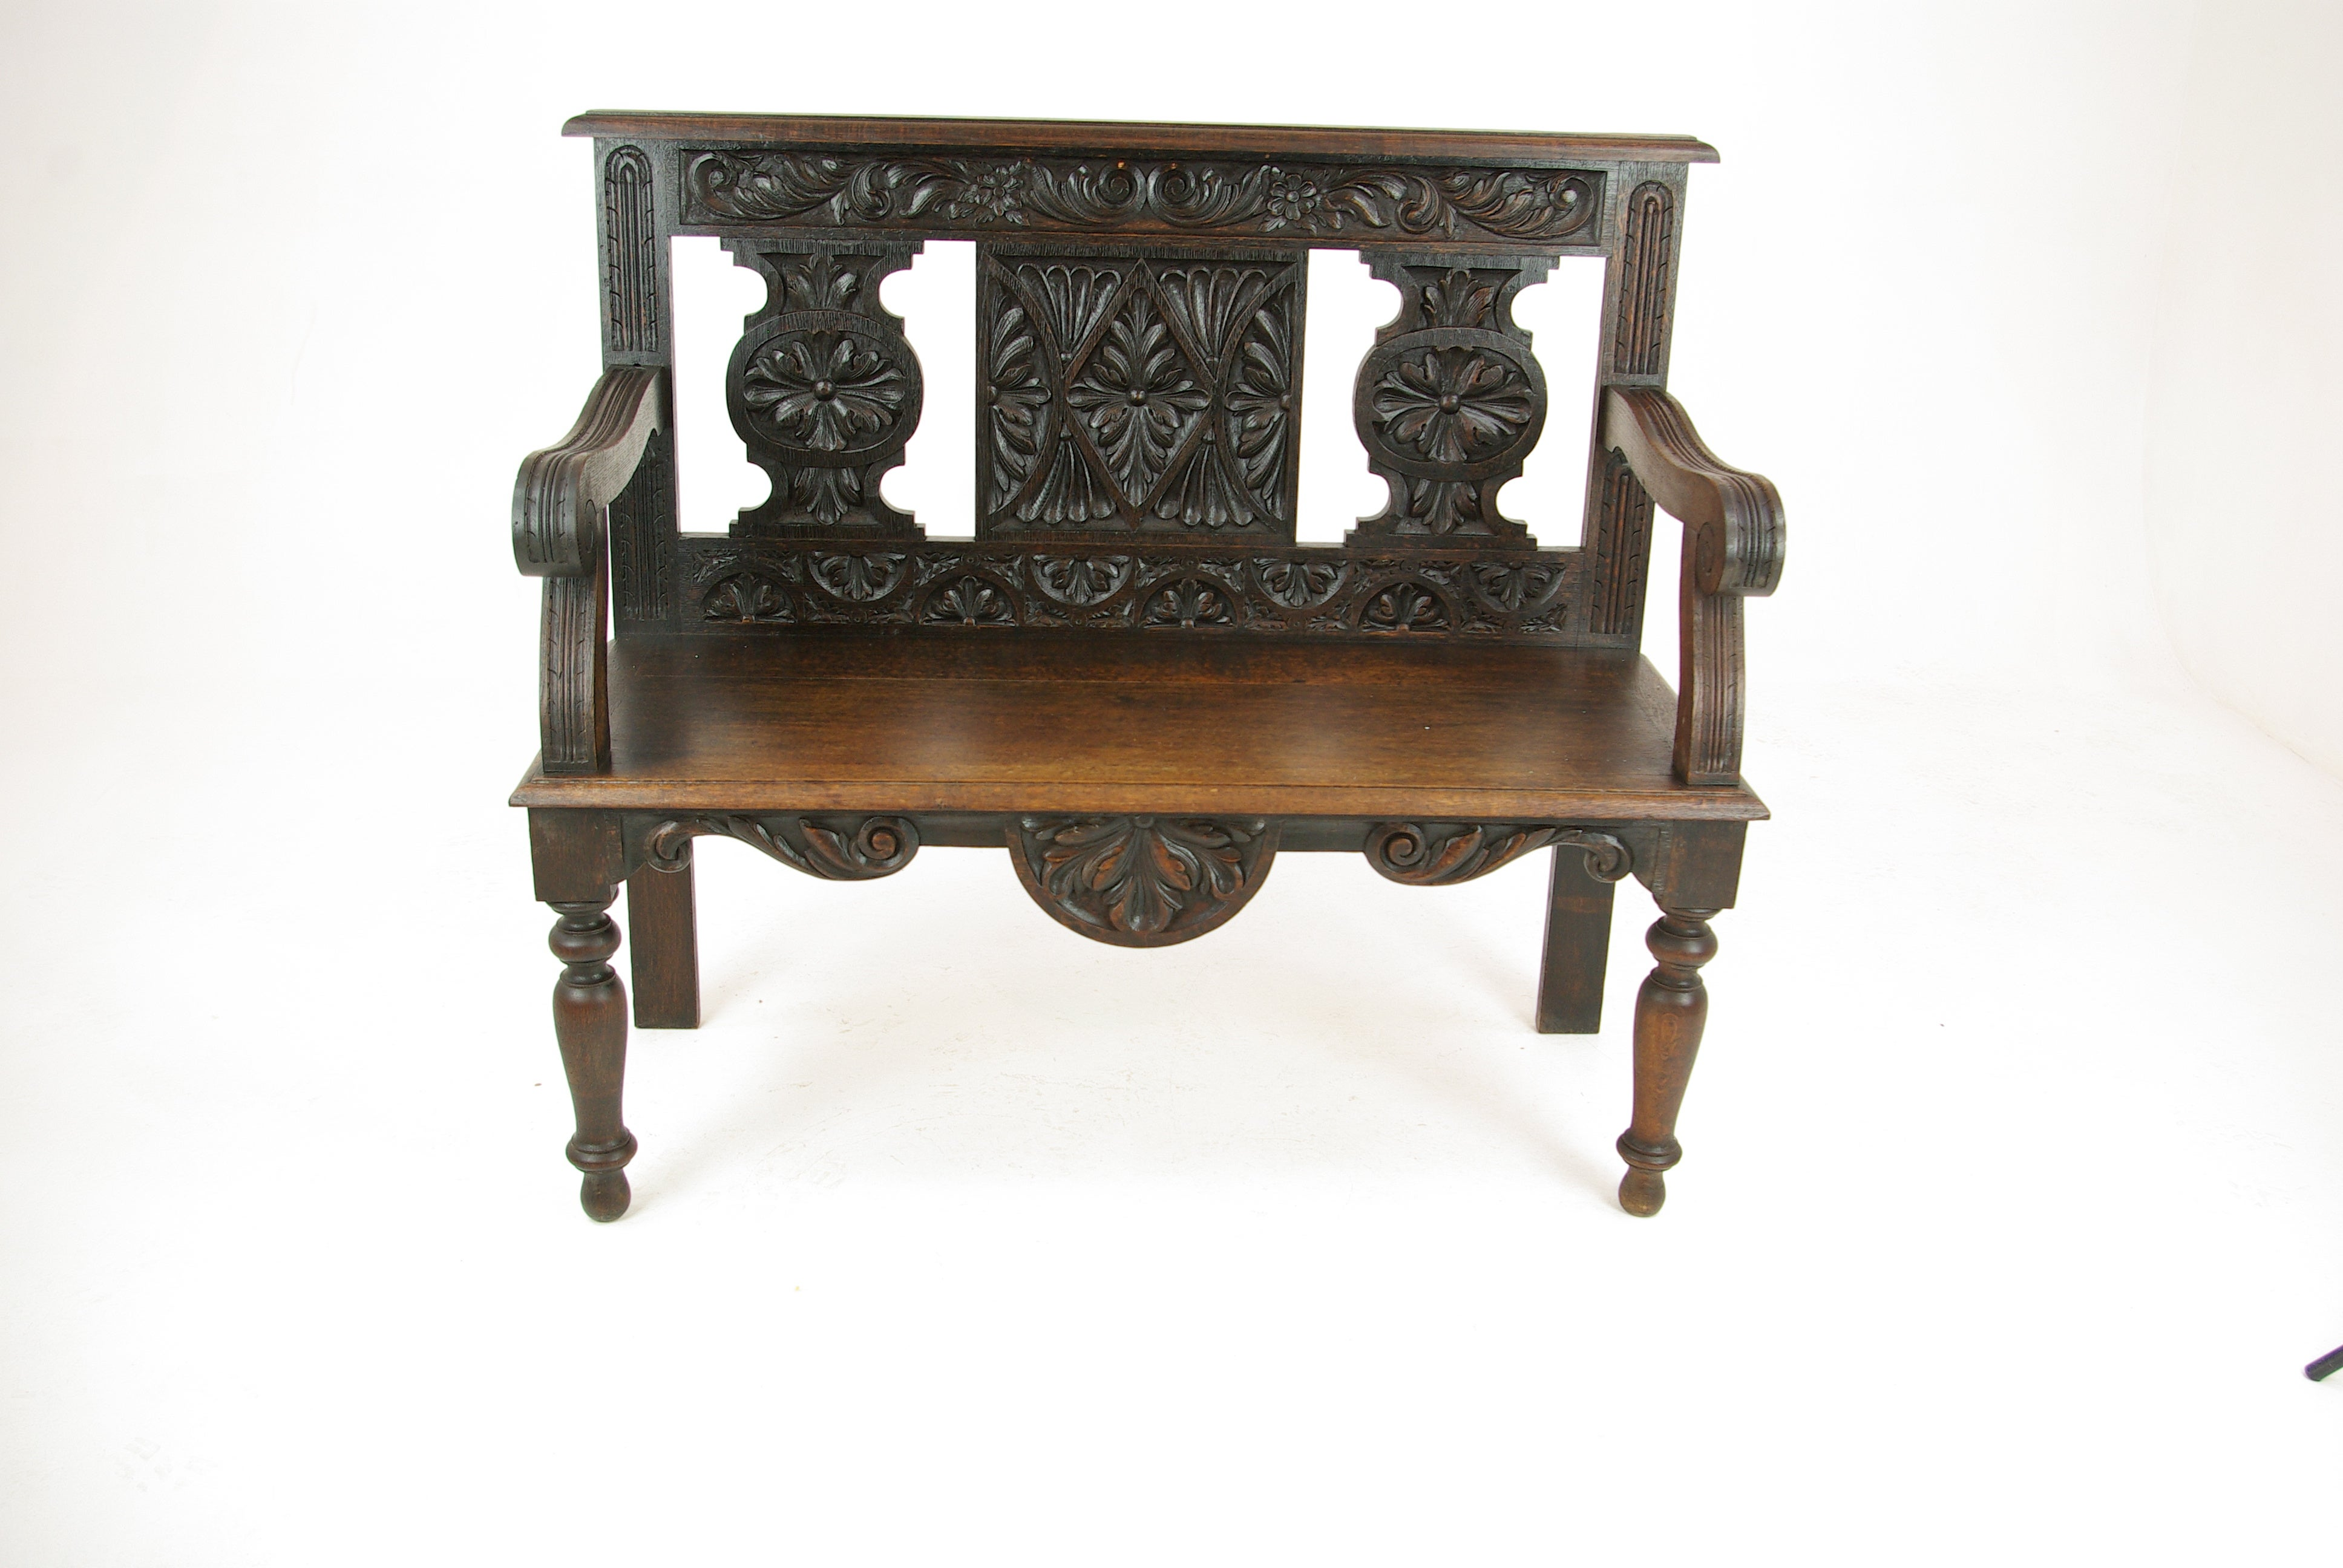 Hall bench hall seat carved oak bench entryway furniture 1880 for sale at 1stdibs